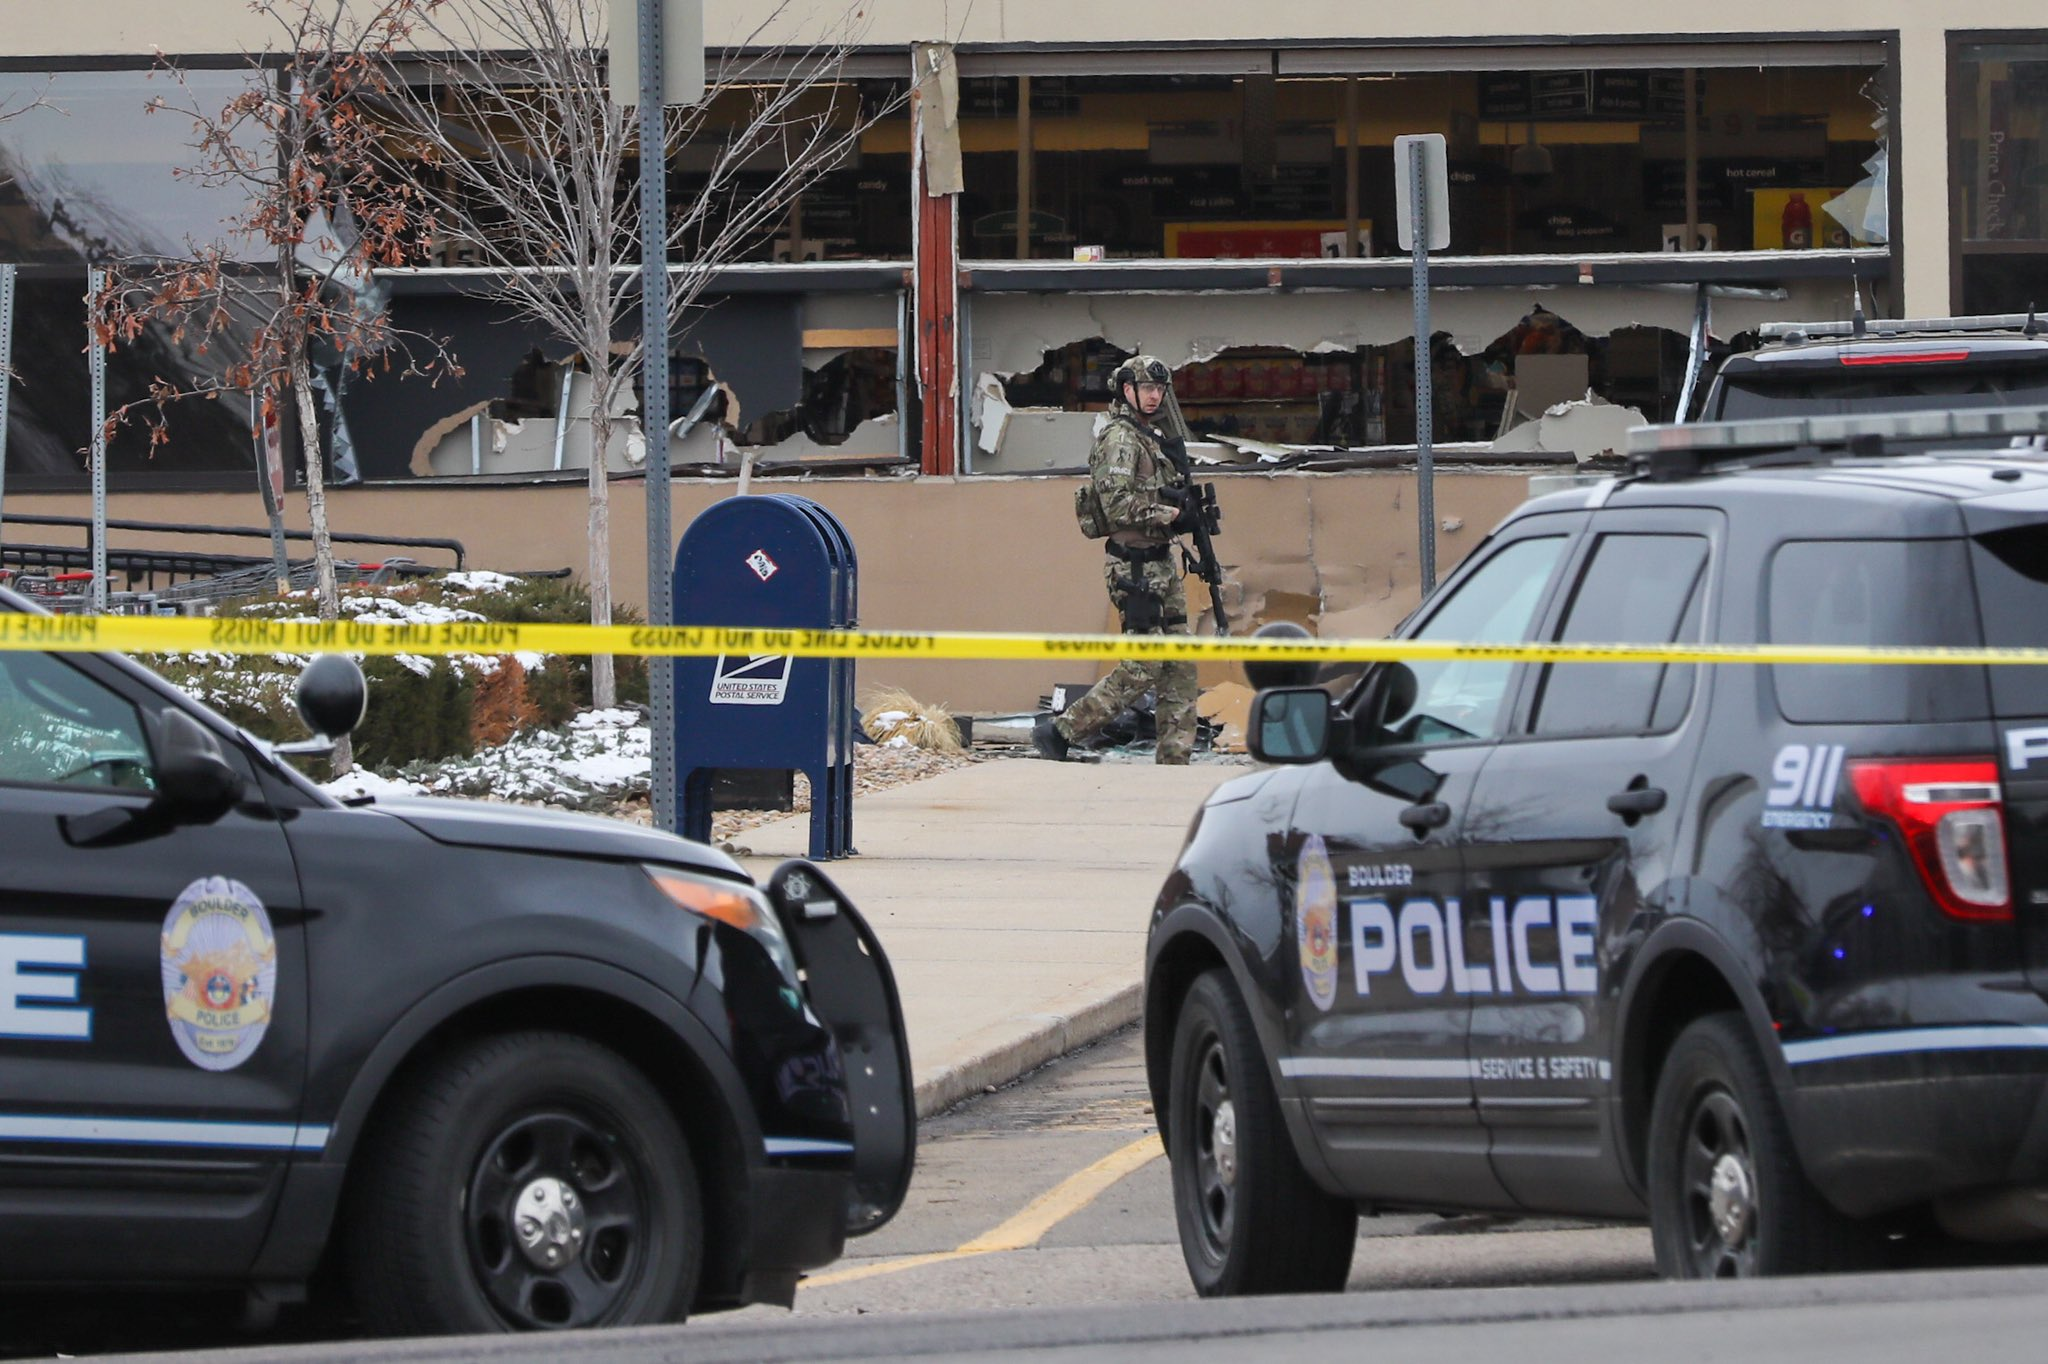 The front windows of the King Soopers on Table Mesa in south Boulder are smashed in, after reports of an active shooter inside on Monday, March 22, 2021